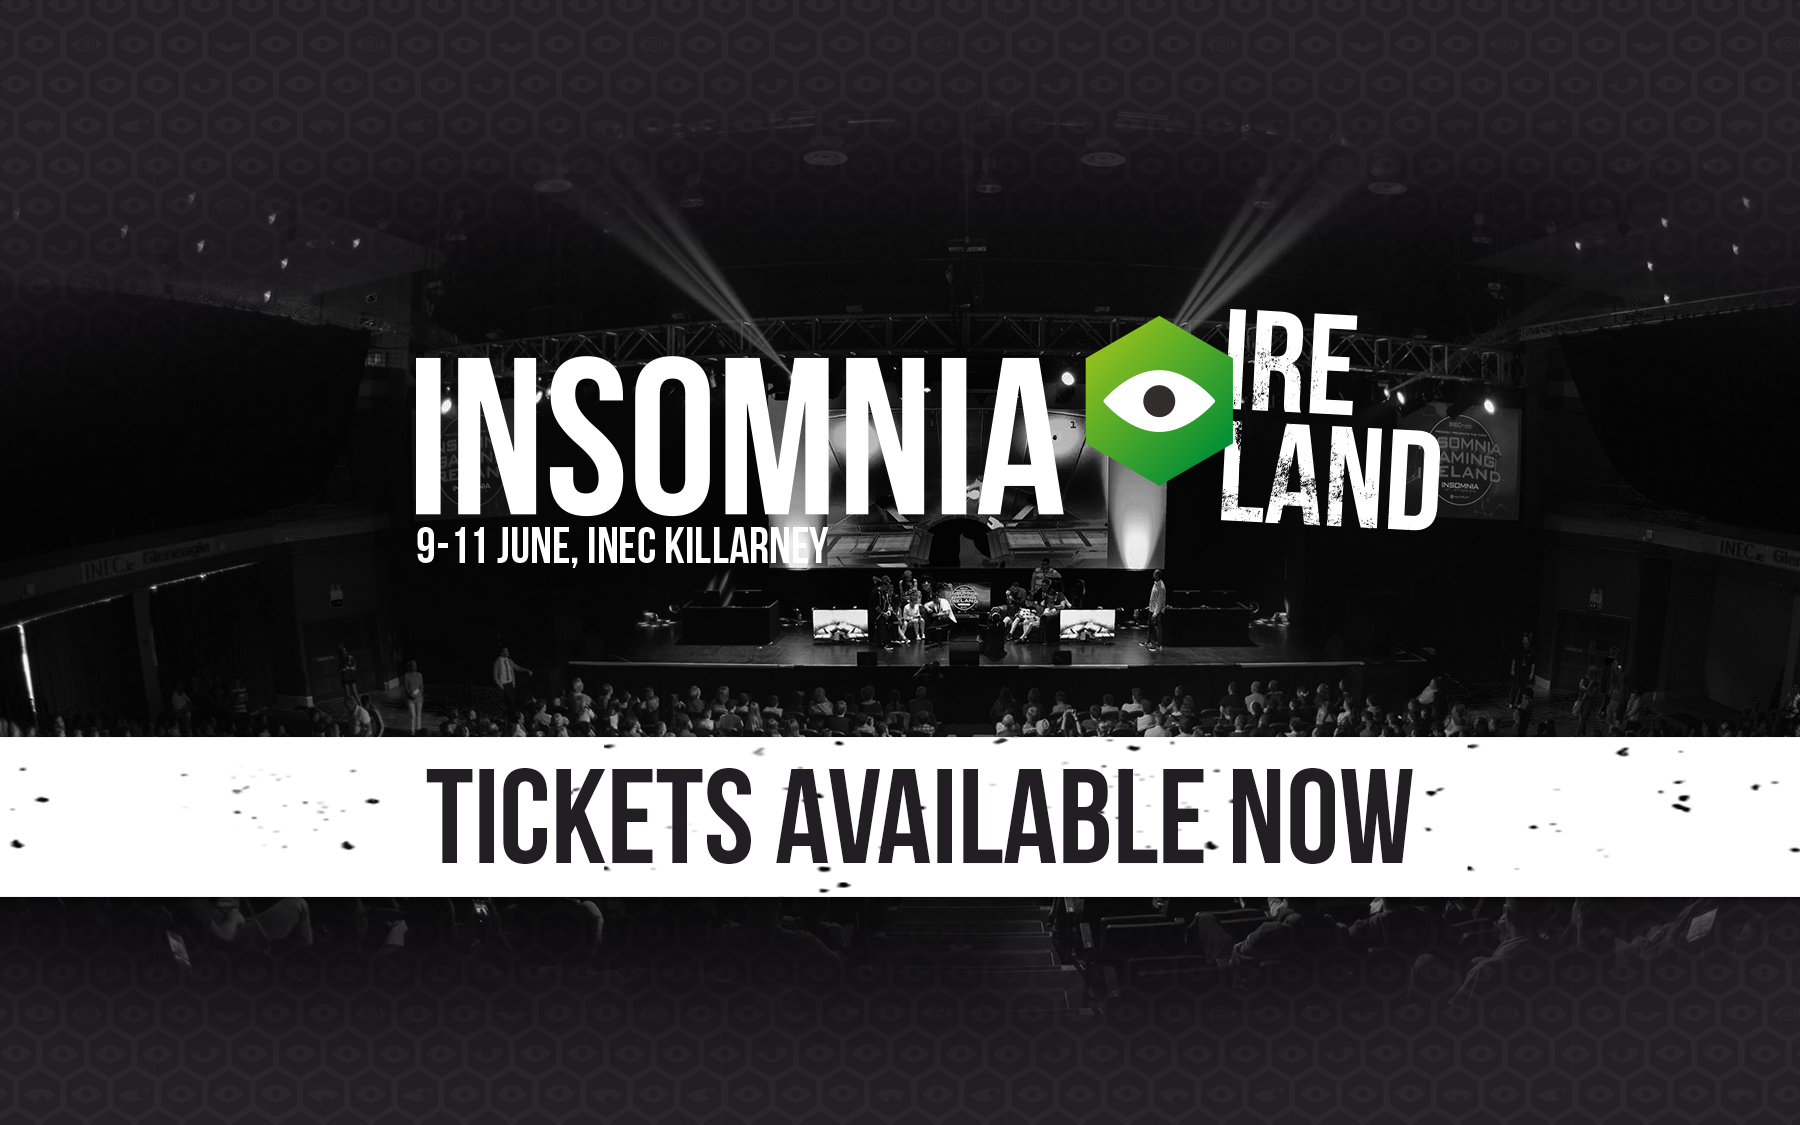 Insomnia Gaming Festival returns to the INEC Killarney